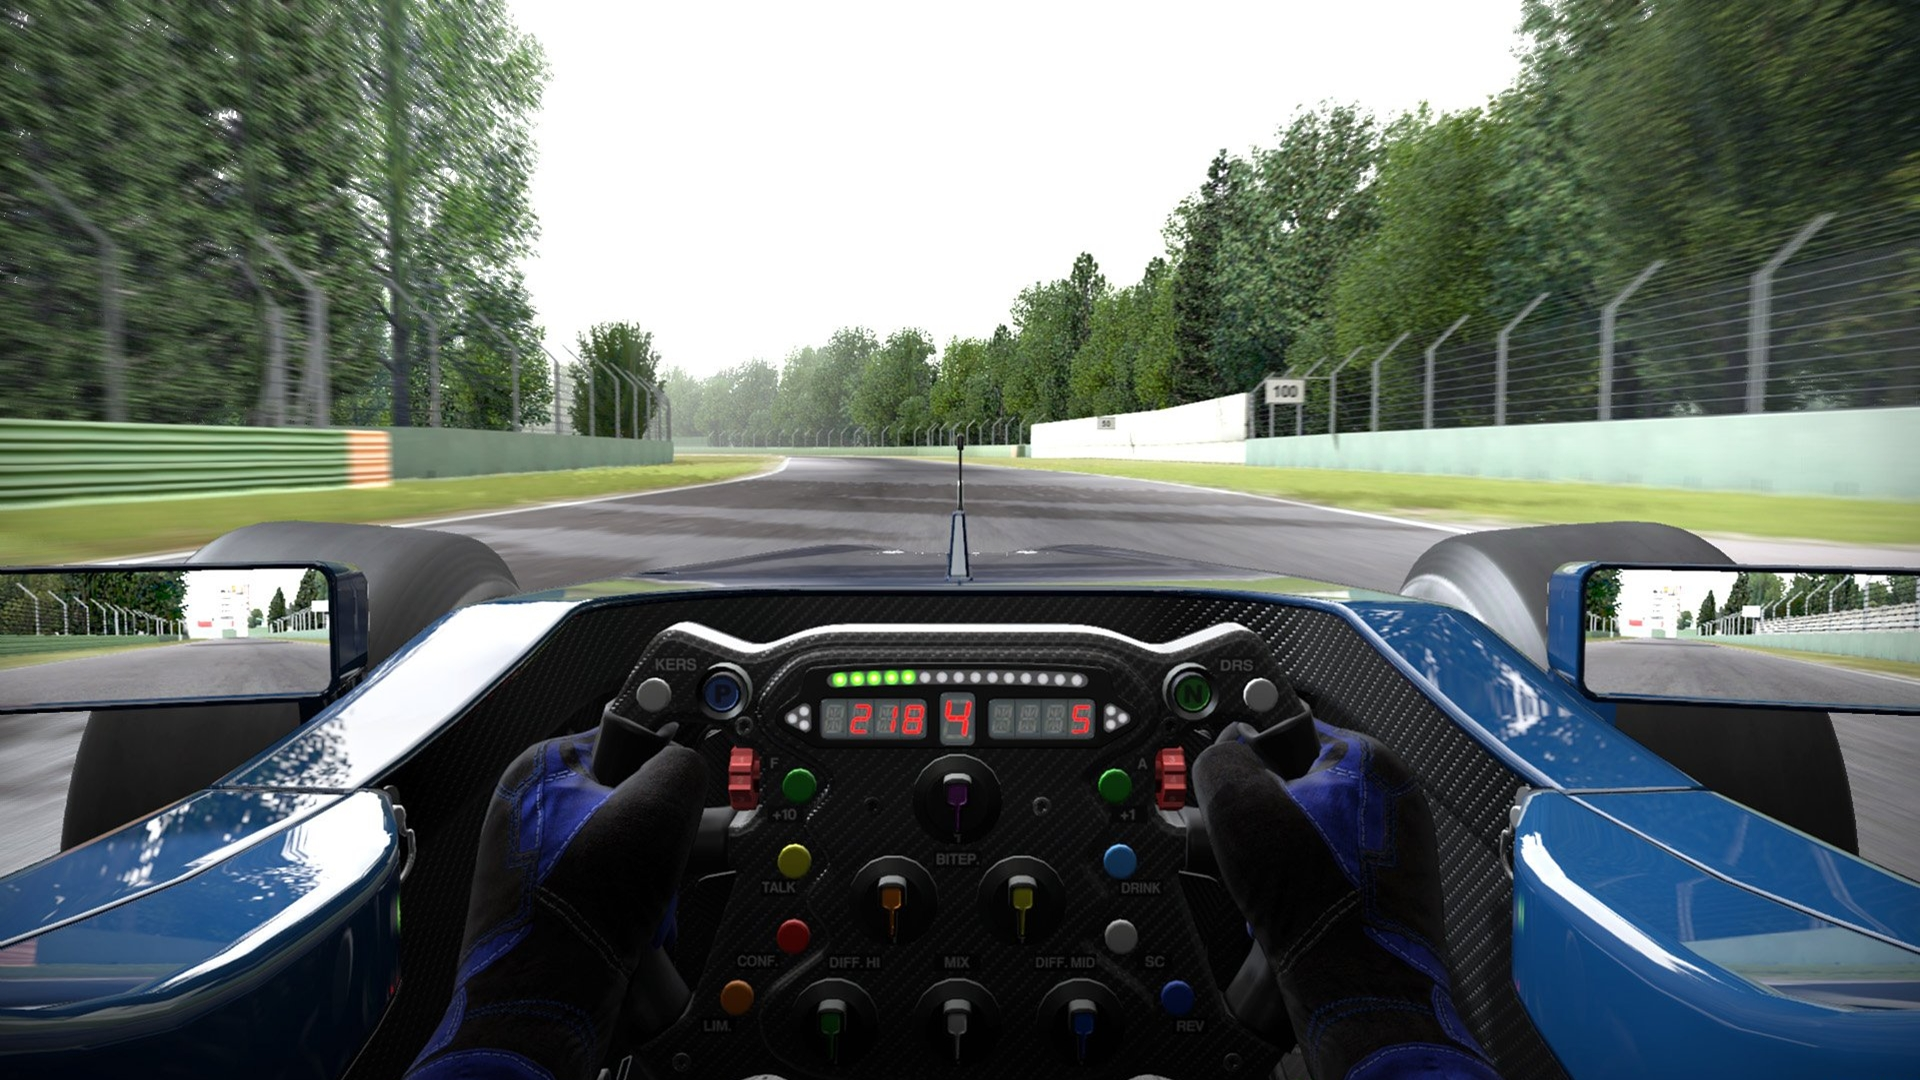 Formula 1 One Race Car Wallpaper Bright Project Cars In Game Ps4 Vs Pc Comparison Shows Hardly